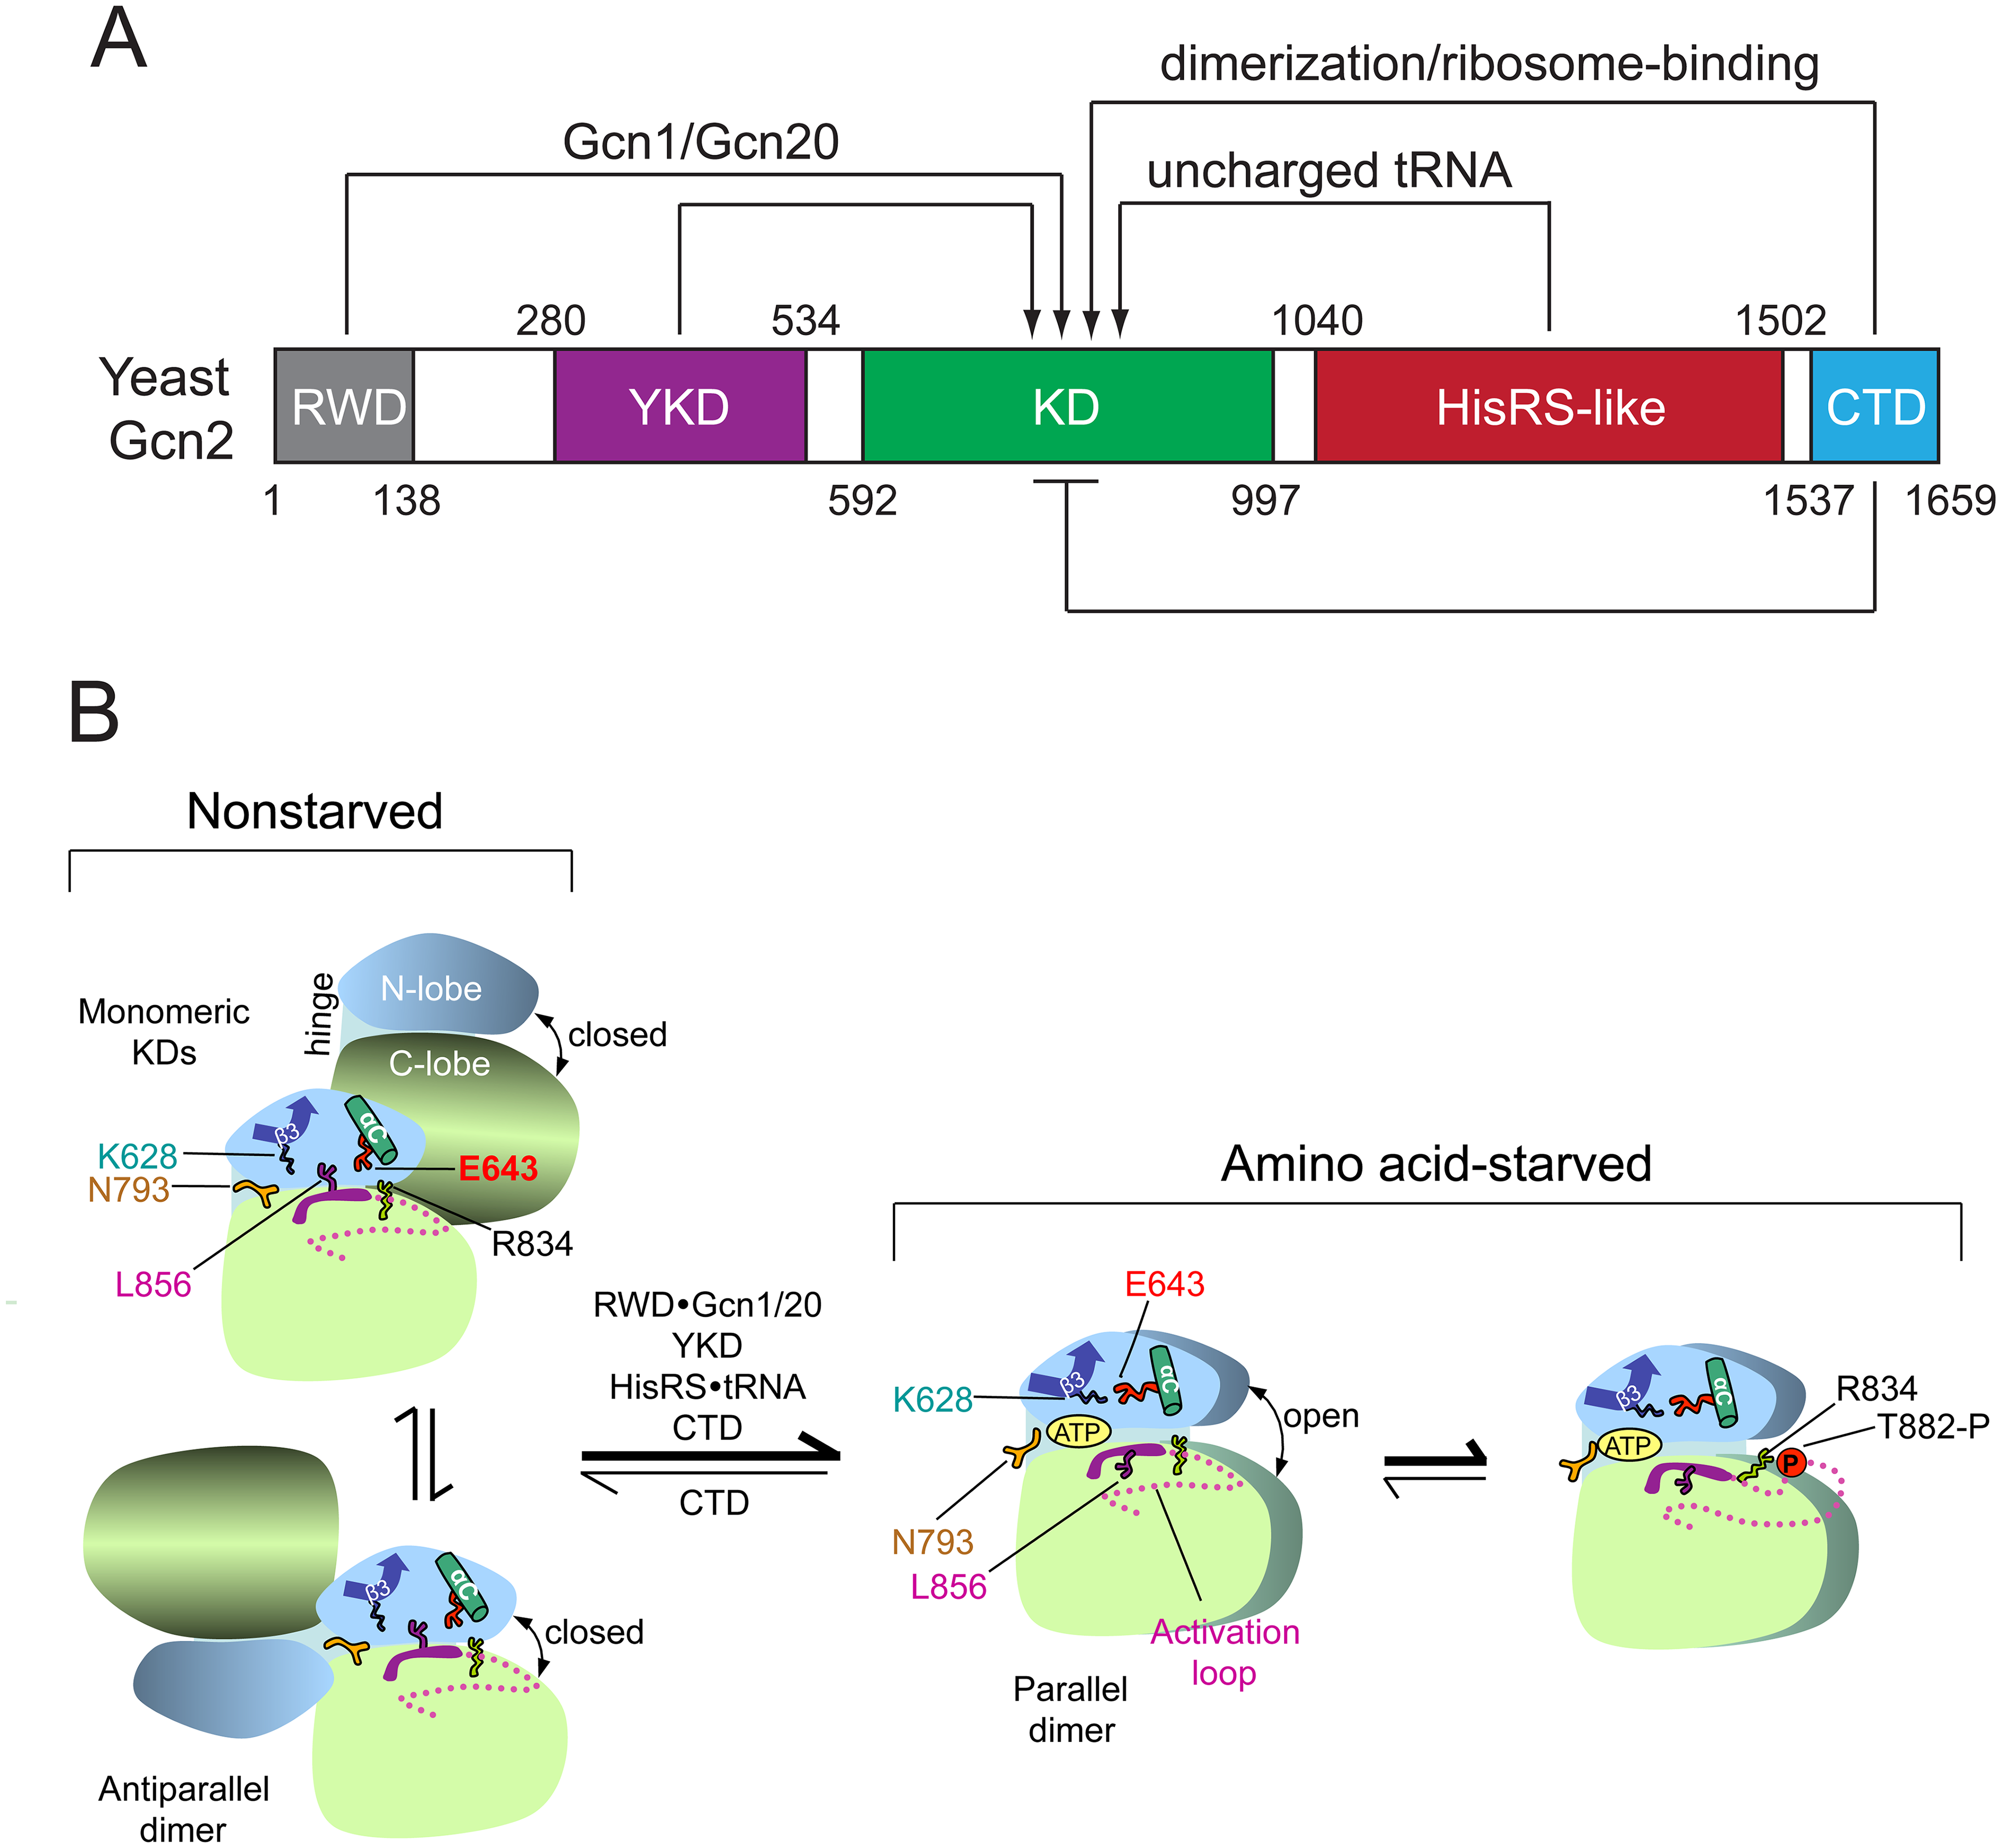 Summary of domain interactions in Gcn2 that couple binding of uncharged tRNA to activation of kinase function in starved cells.